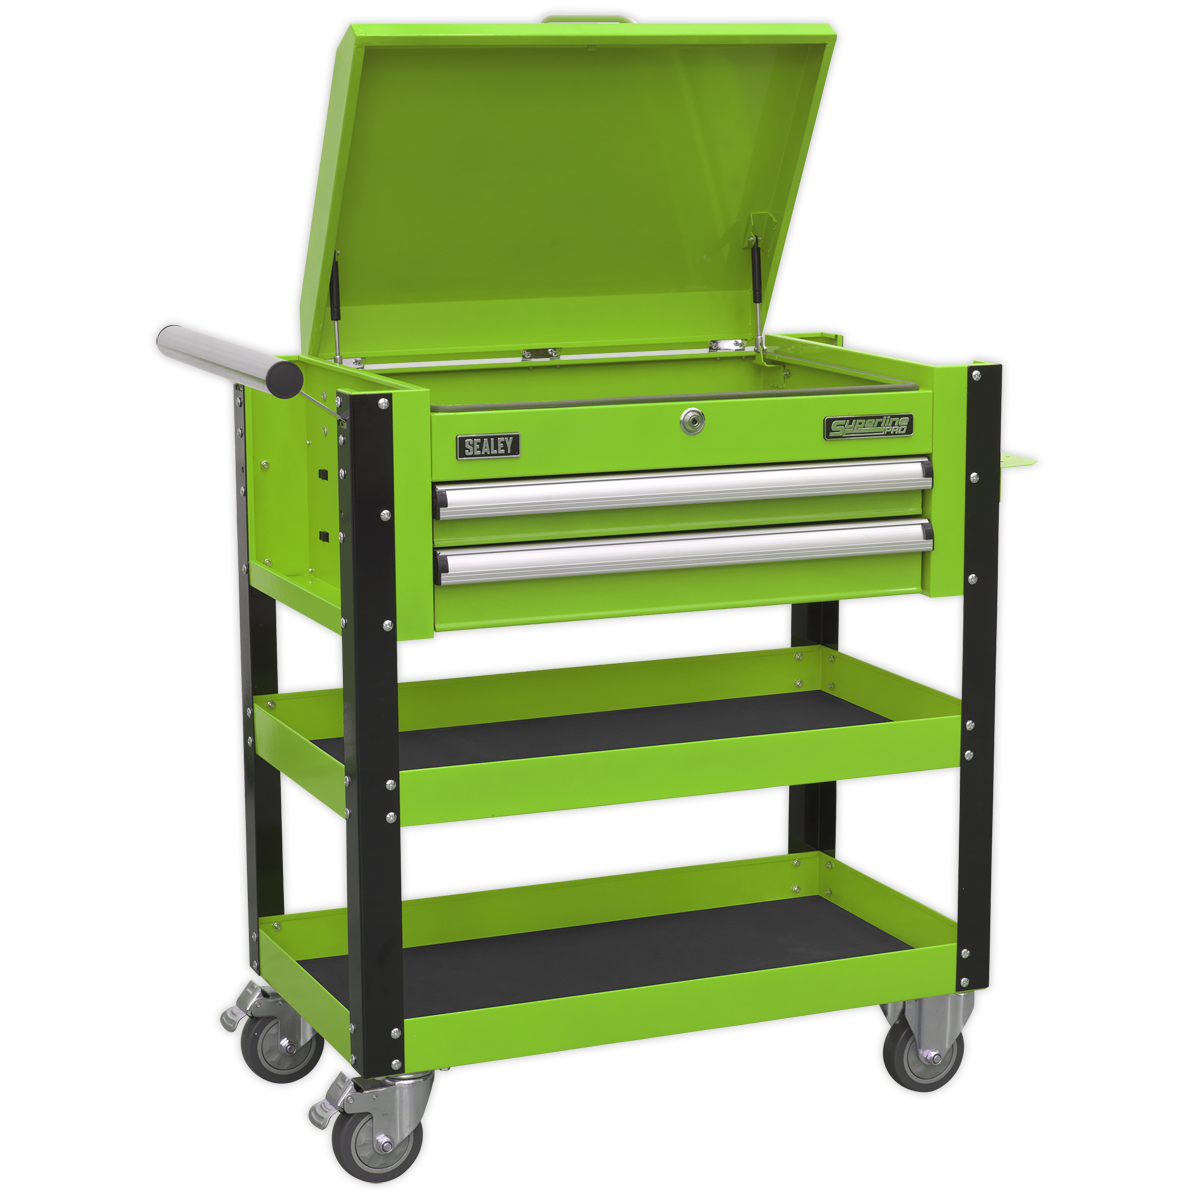 SEALEY Mobile Tool & Parts Trolley with Lockable Top AP760MHV | 40 kg capacity drawers contain ball bearing slides | toolforce.ie